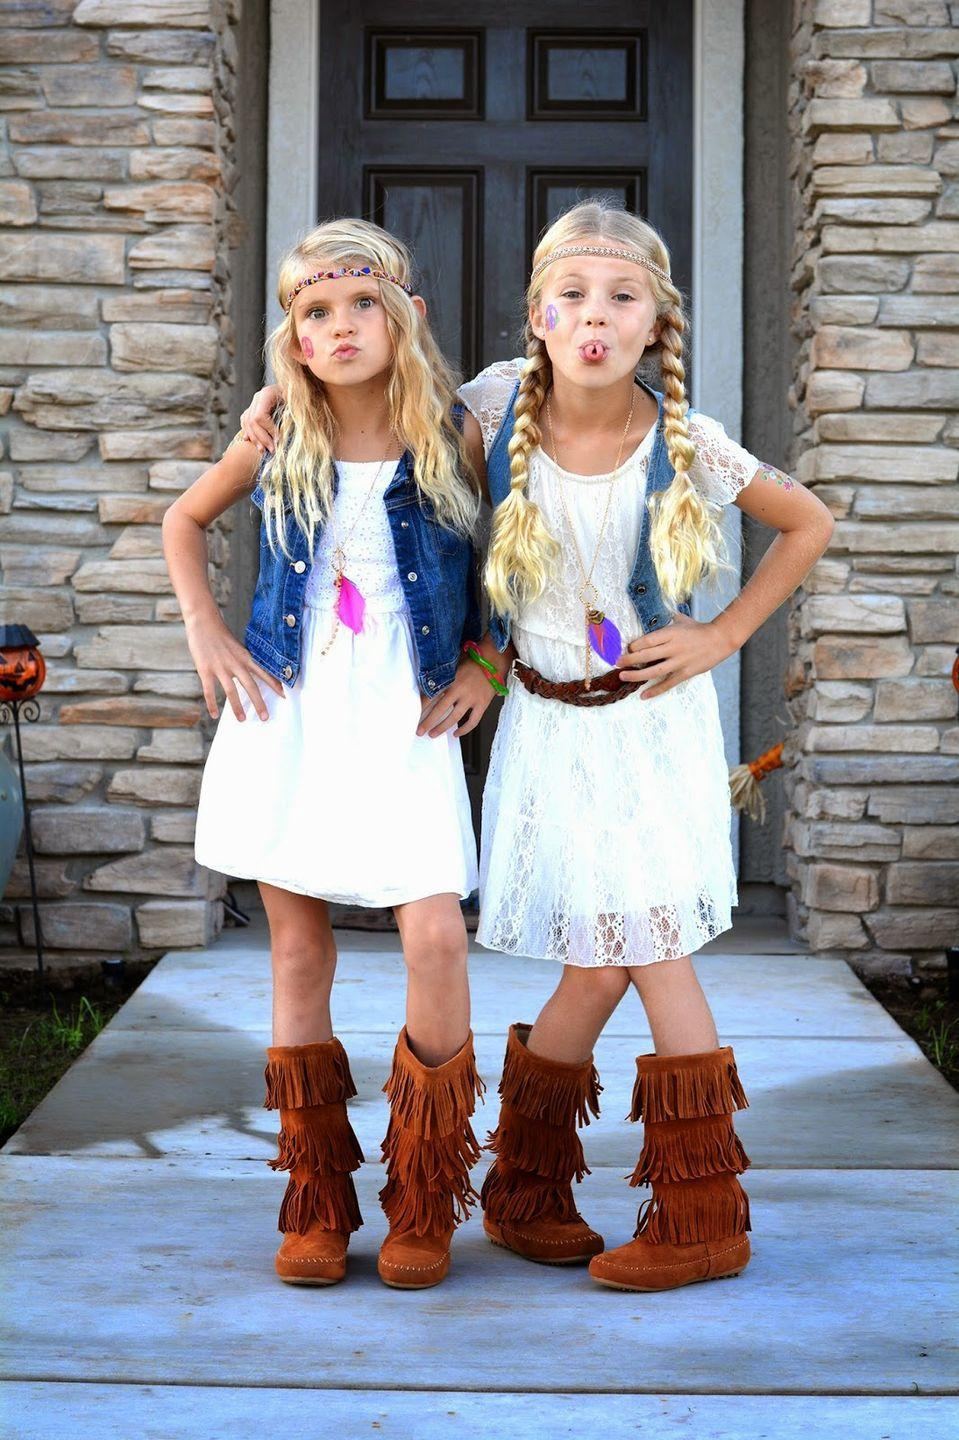 "<p>This DIY will work for kids and adults alike! If you have a boho-style white dress and a denim vest, you're pretty much halfway there. Just add some fringe boots and layer on some necklaces and a headband and you're ready for <a href=""https://www.countryliving.com/life/kids-pets/a23932768/what-time-does-trick-or-treating-start/"" rel=""nofollow noopener"" target=""_blank"" data-ylk=""slk:trick-or-treating"" class=""link rapid-noclick-resp"">trick-or-treating</a>.</p><p><strong>Get the tutorial at <a href=""http://minifashionaddicts.blogspot.com/2014/10/hippie-day.html"" rel=""nofollow noopener"" target=""_blank"" data-ylk=""slk:Mini Fashion Addicts"" class=""link rapid-noclick-resp"">Mini Fashion Addicts</a>. </strong></p><p><a class=""link rapid-noclick-resp"" href=""https://www.amazon.com/Milumia-Womens-Bohemian-Drawstring-Splicing/dp/B01GCE2FGE/ref=sr_1_4?tag=syn-yahoo-20&ascsubtag=%5Bartid%7C10050.g.28305469%5Bsrc%7Cyahoo-us"" rel=""nofollow noopener"" target=""_blank"" data-ylk=""slk:SHOP WHITE DRESSES"">SHOP WHITE DRESSES</a><br></p>"